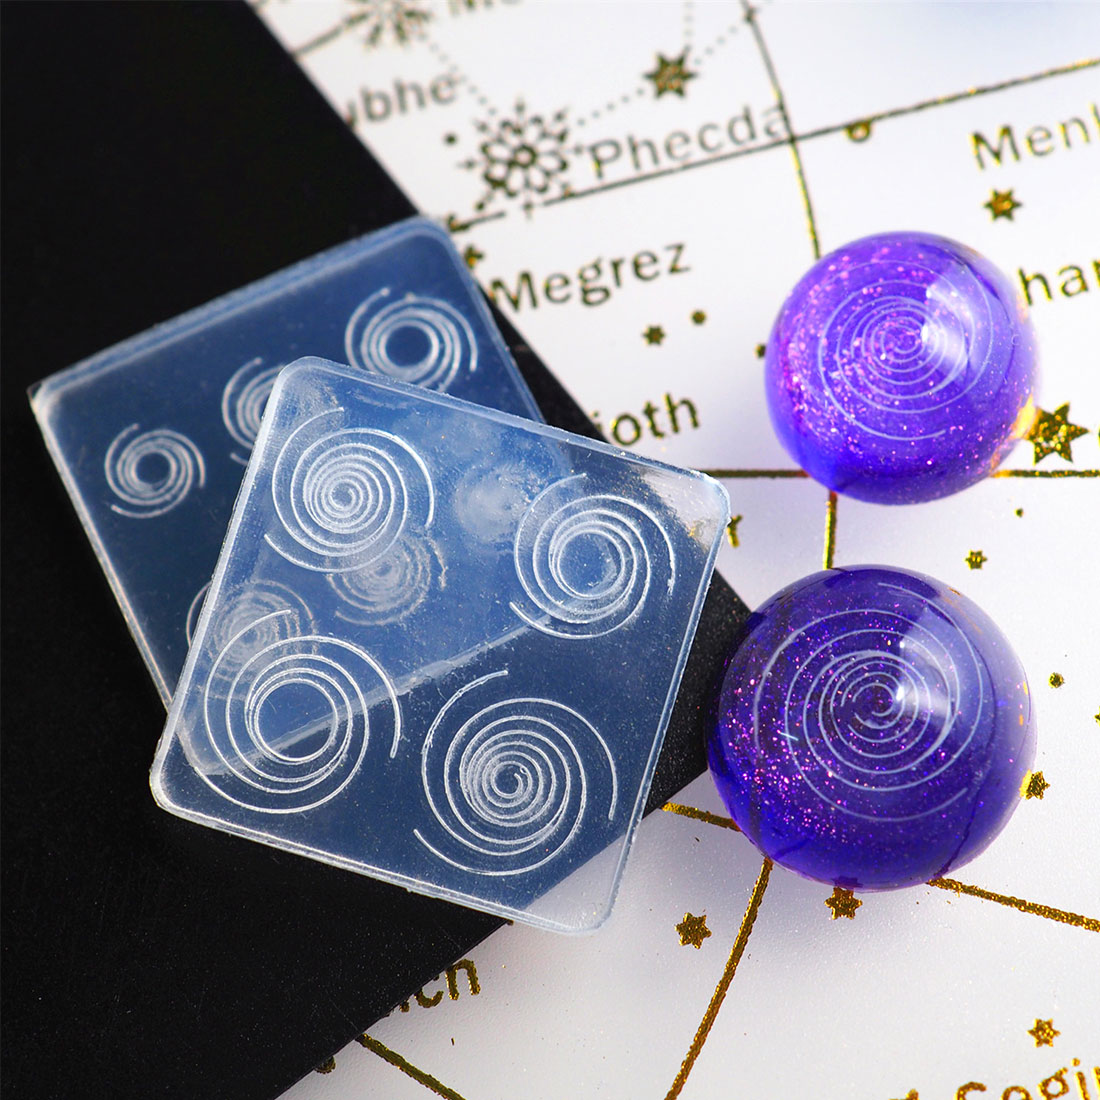 epoksi silikon kalip Silicone Mould Resin Decorative Craft DIY Starry sky spiral Mold epoxy resin molds for jewelry making filli in Jewelry Tools Equipments from Jewelry Accessories